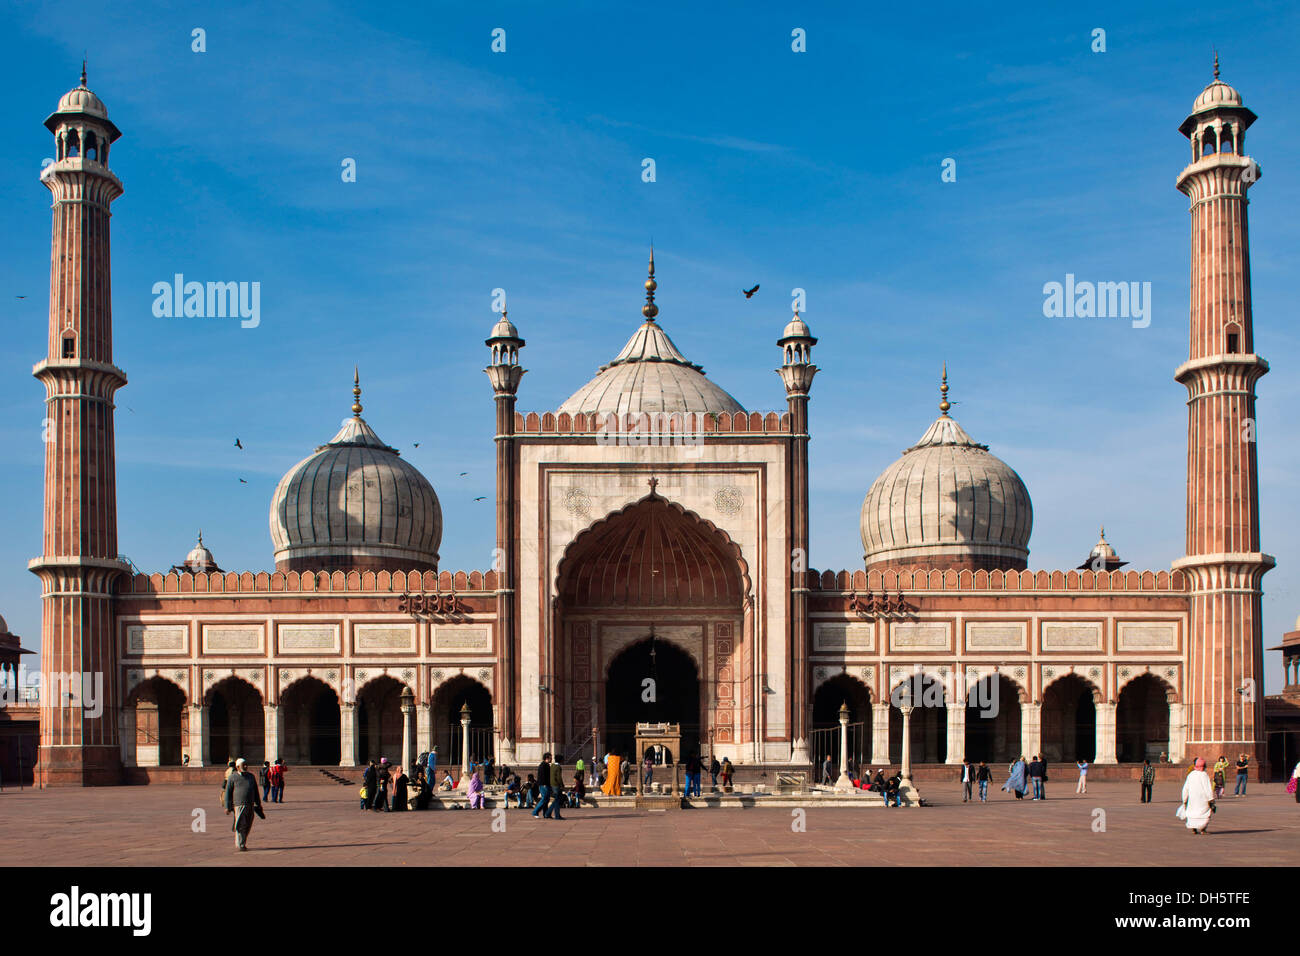 Islamic Jama Masjid Mosque, Masjid-i Jahān-Numā, with domes and minarets, largest mosque in India, Delhi, India - Stock Image